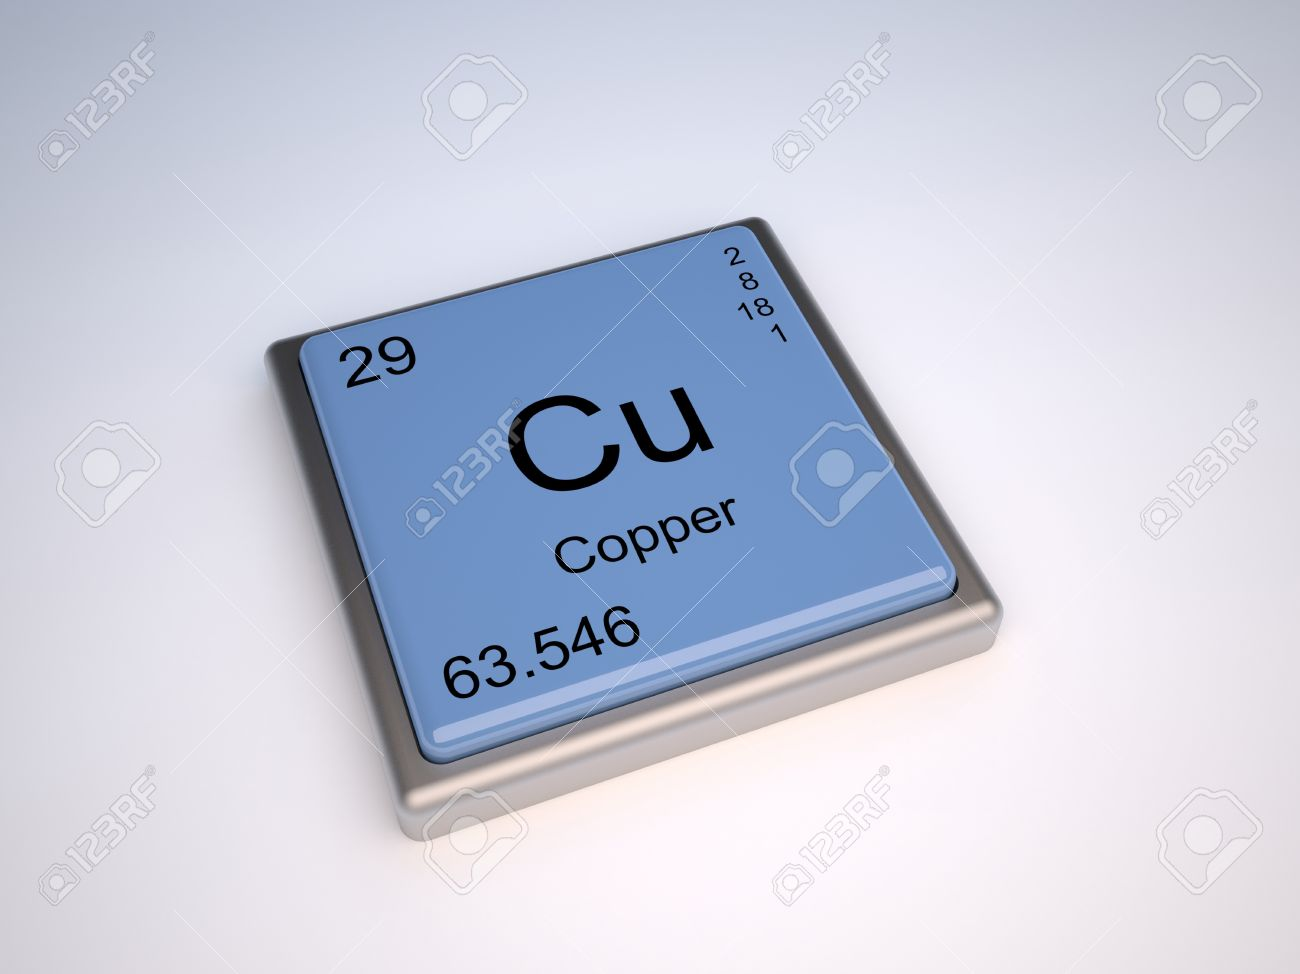 Copper element periodic table image collections periodic table copper chemical element of the periodic table with symbol cu stock copper chemical element of the gamestrikefo Gallery